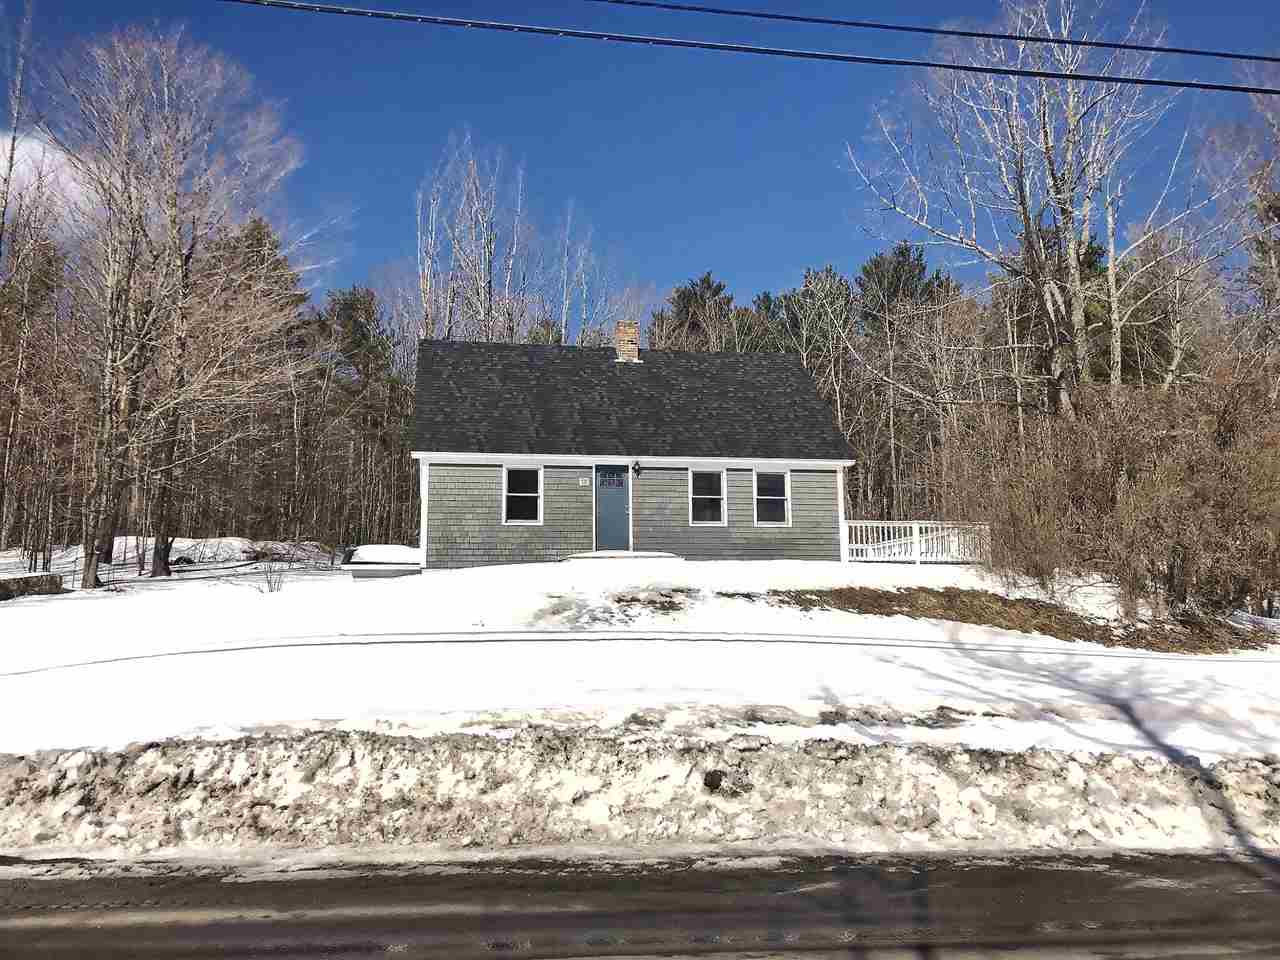 MLS 4740493: 156 Trow Hill Road, Sunapee NH